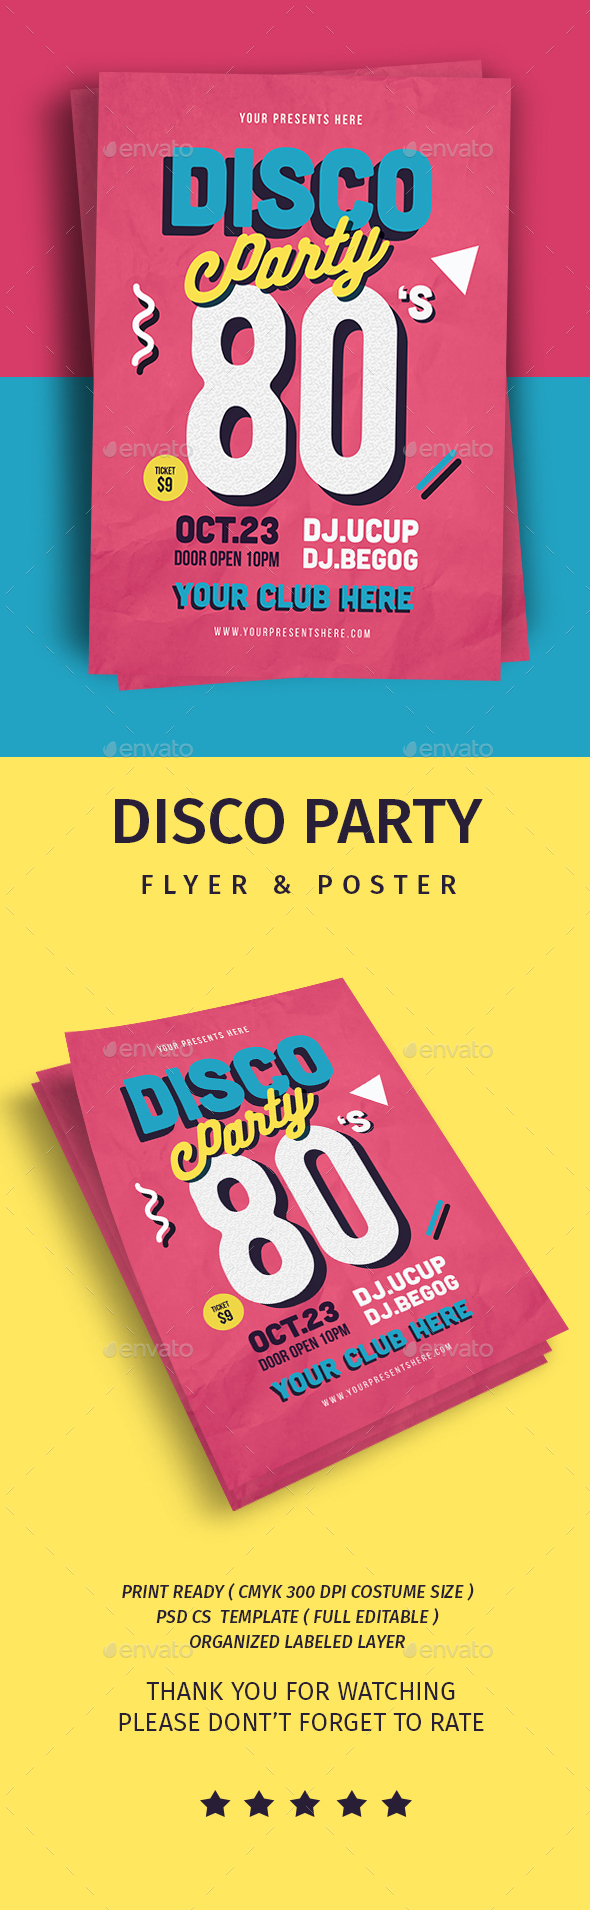 Disco Party Flyer - Flyers Print Templates